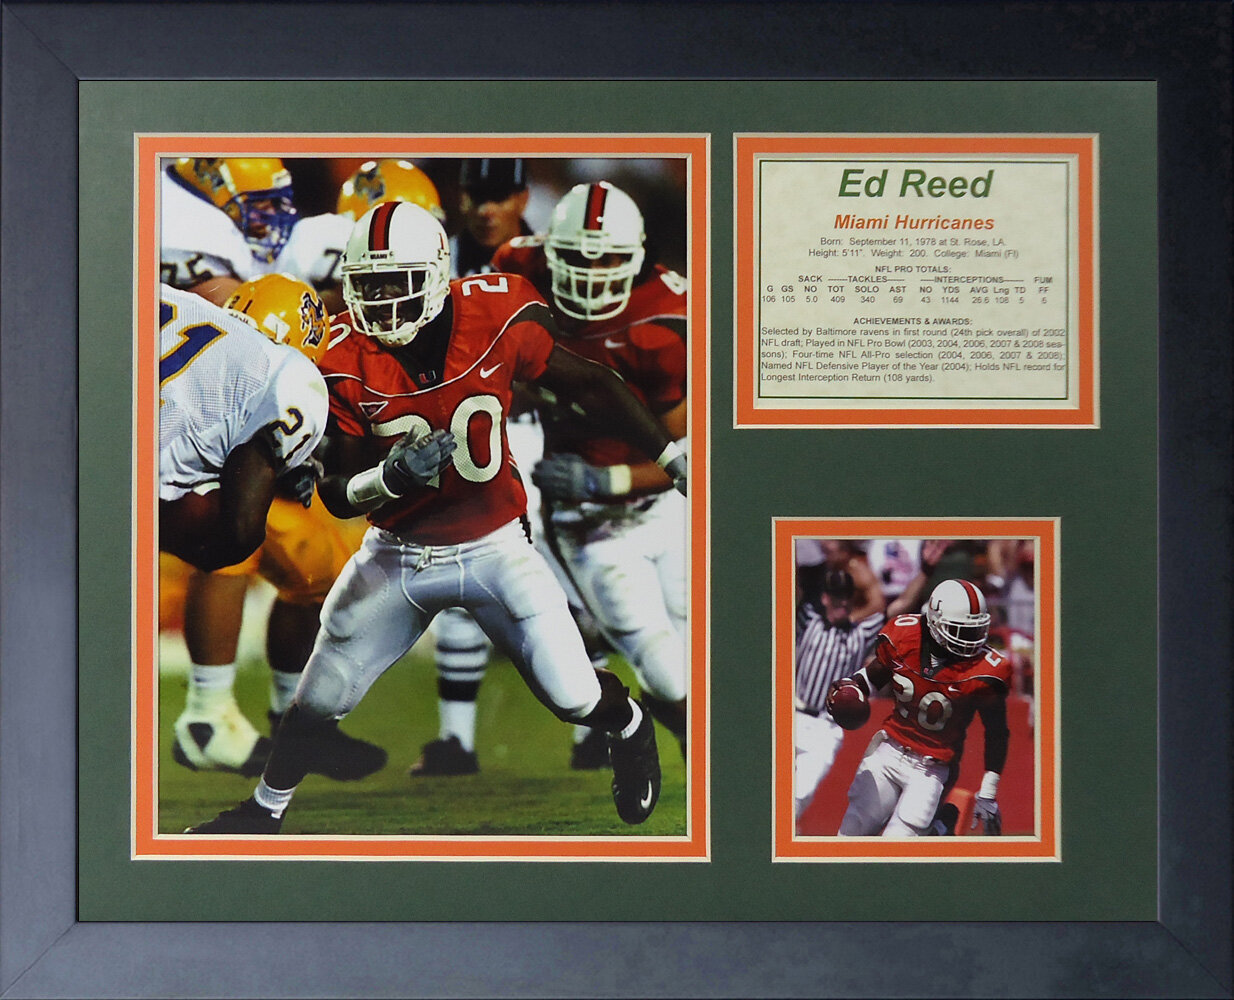 super popular 9e620 bee06 Ed Reed - Miami Hurricanes Framed Photographic Print